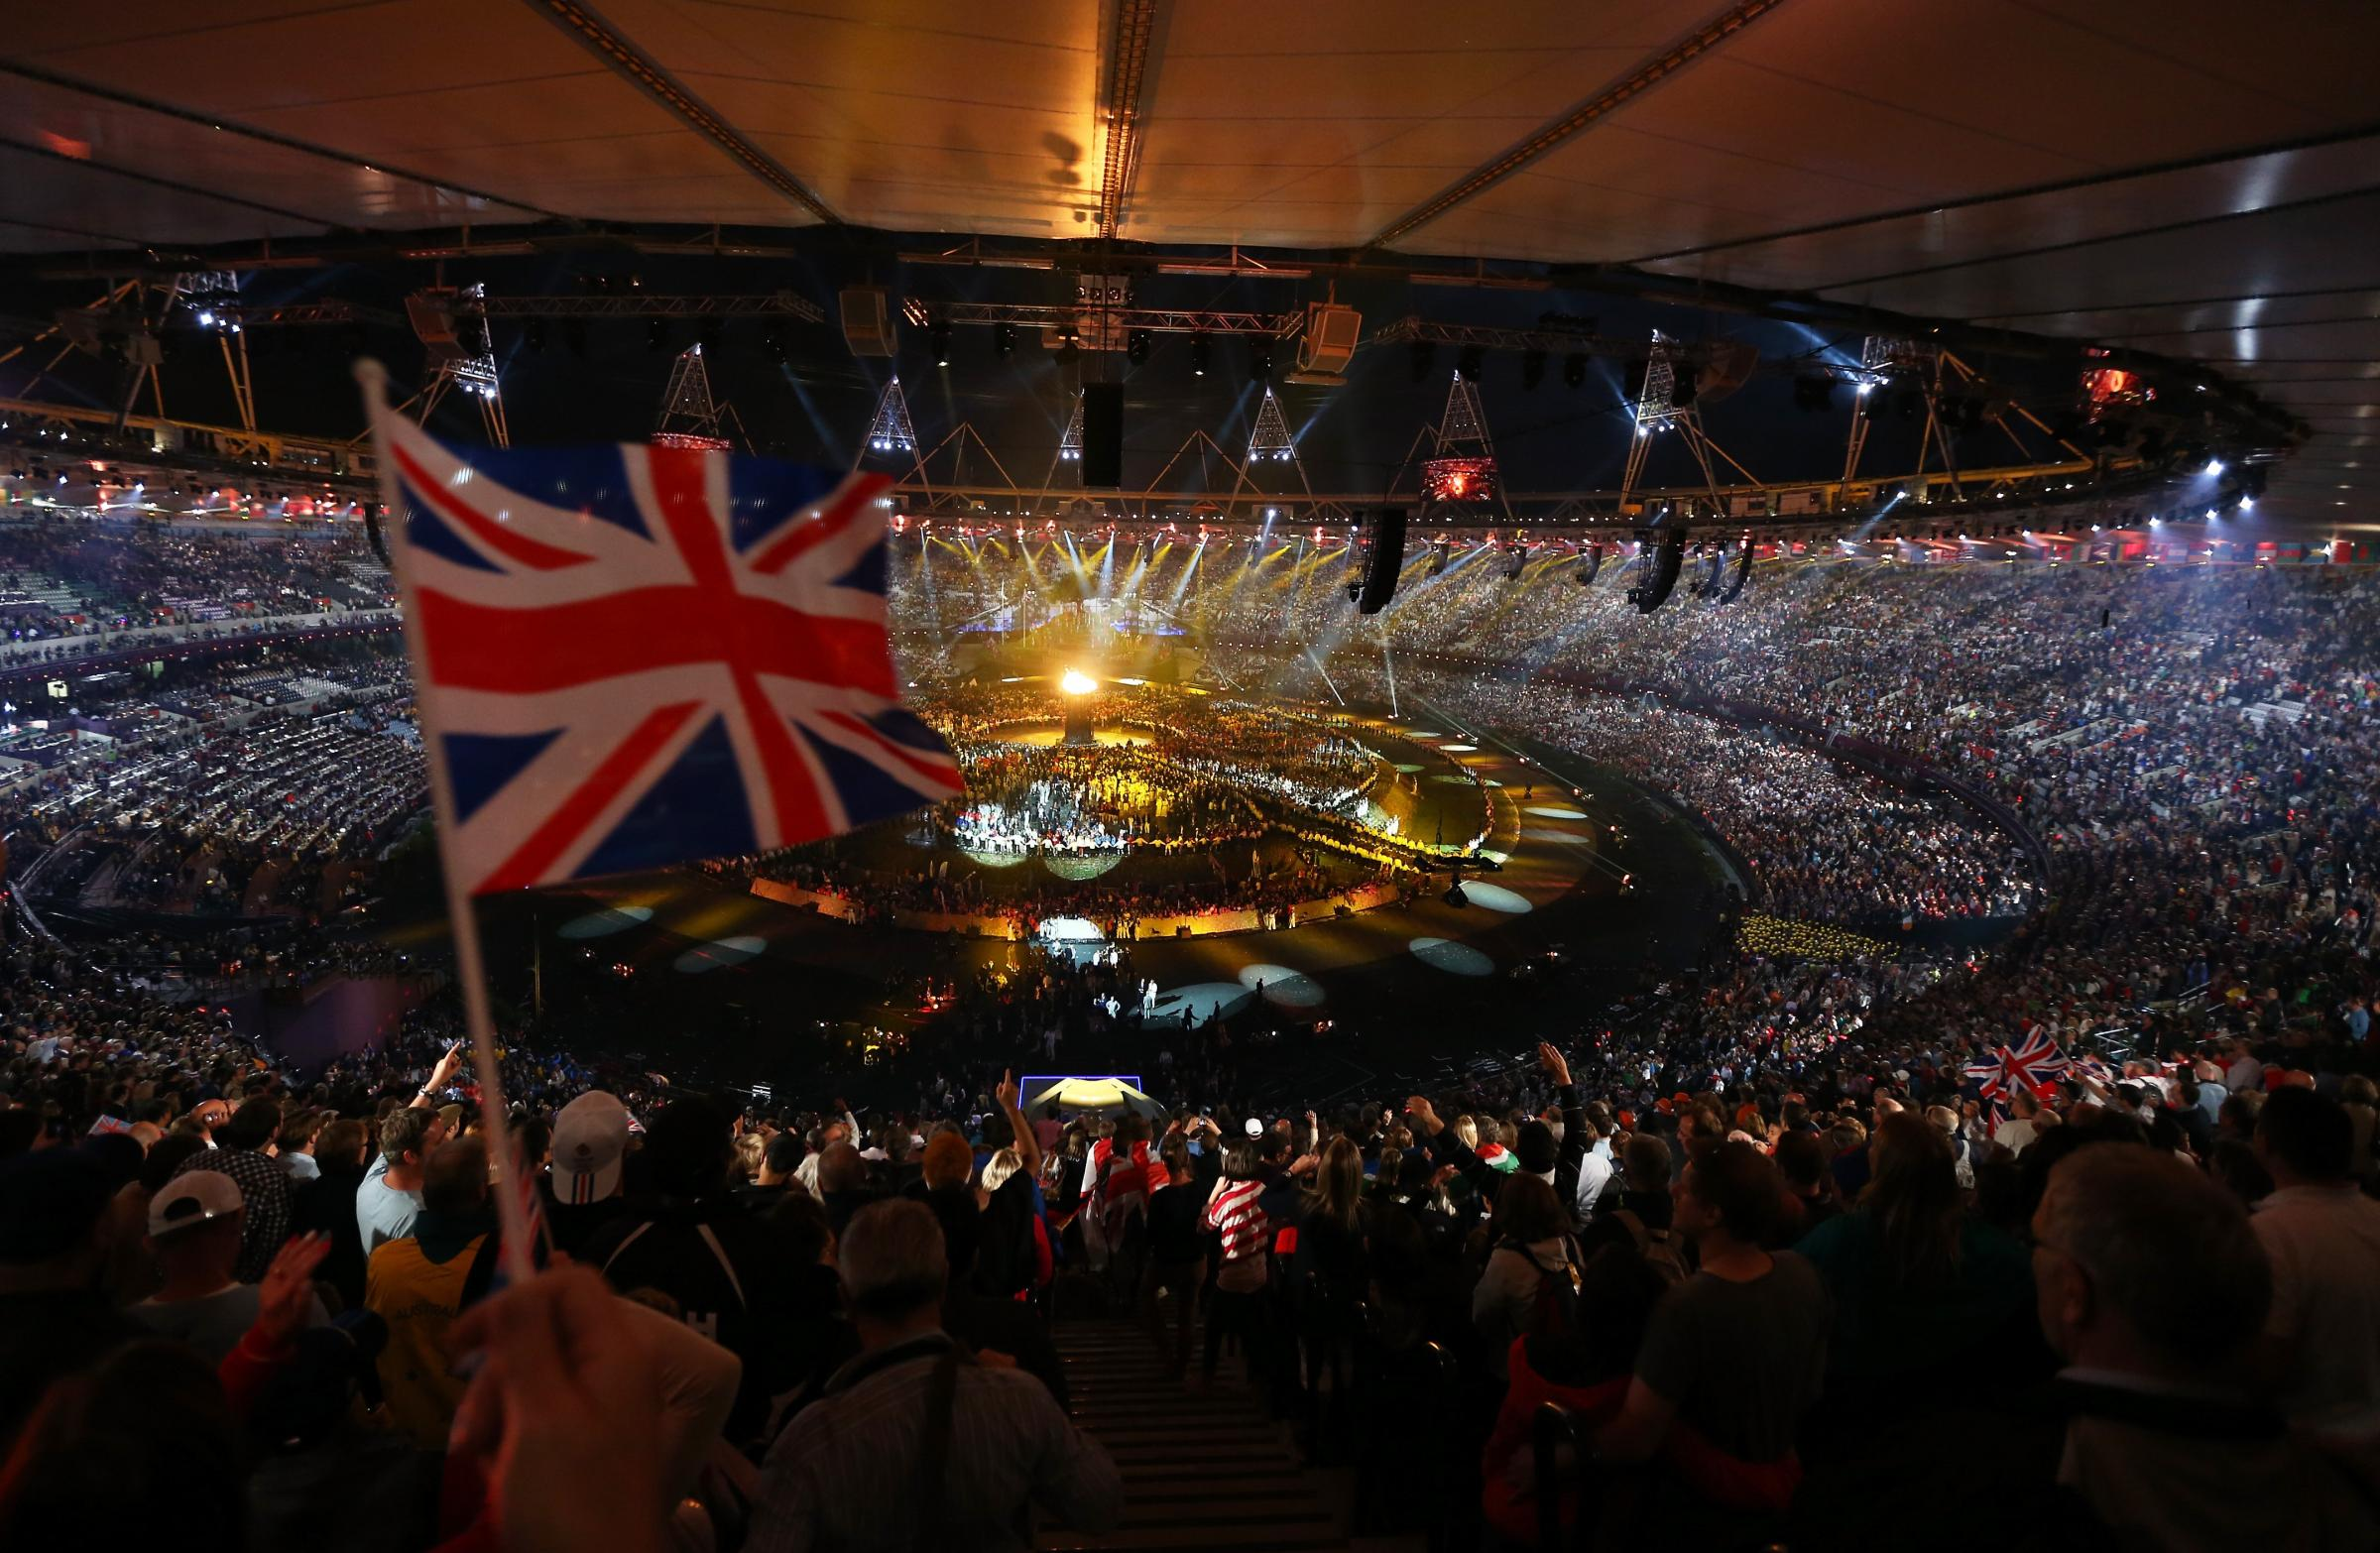 Britfest: The opening ceremony of the 2012 London Olympics